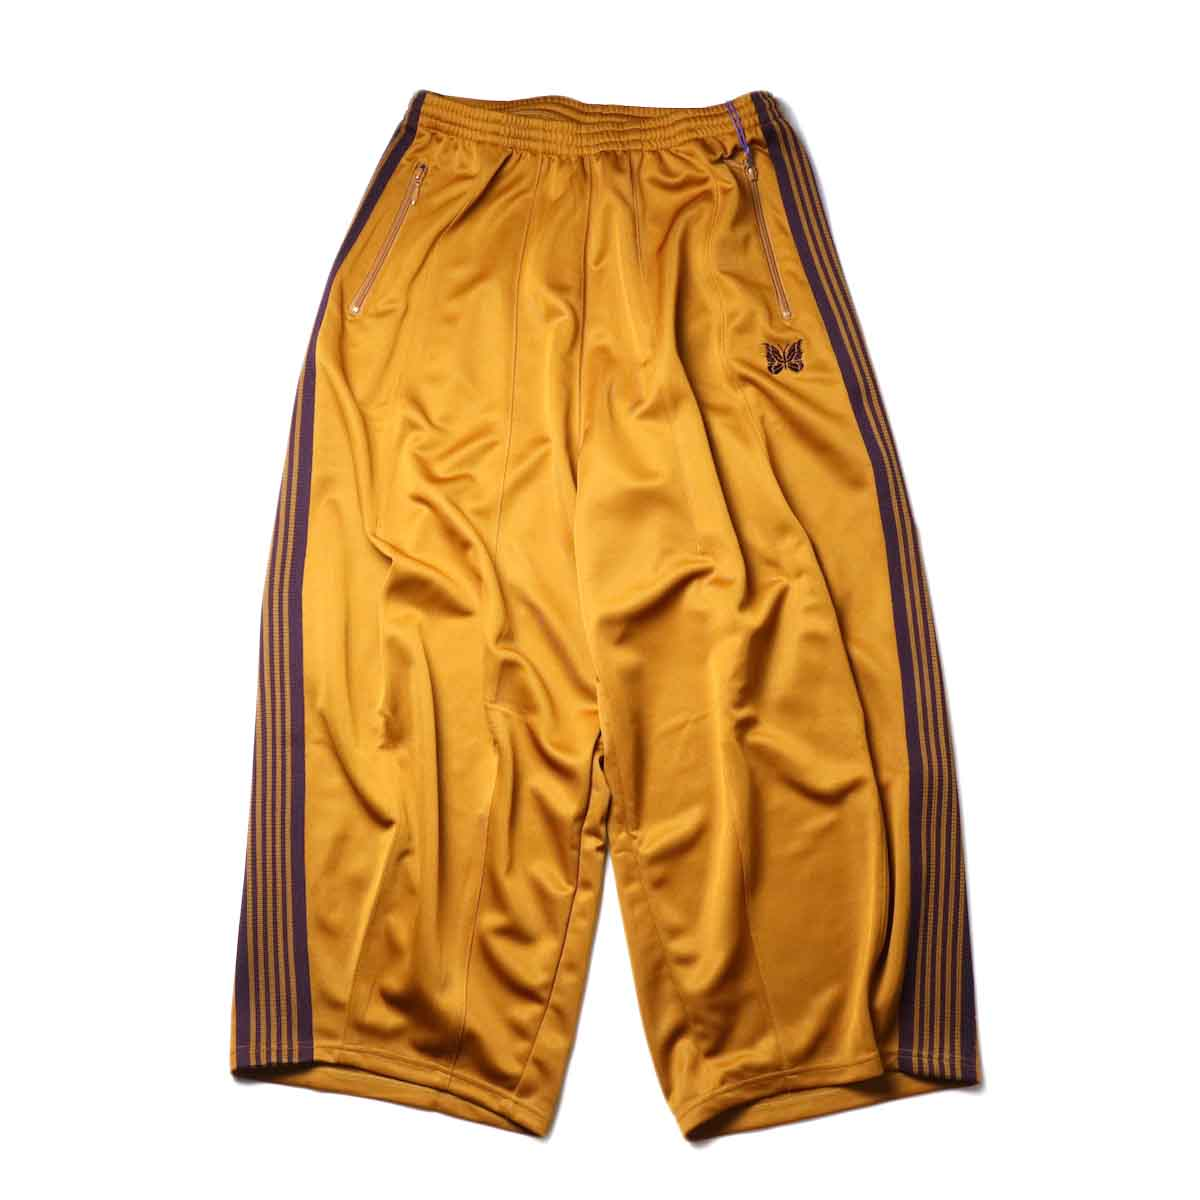 Needles / H.D. TRACK PANT - POLY SMOOTH (Mustard)正面